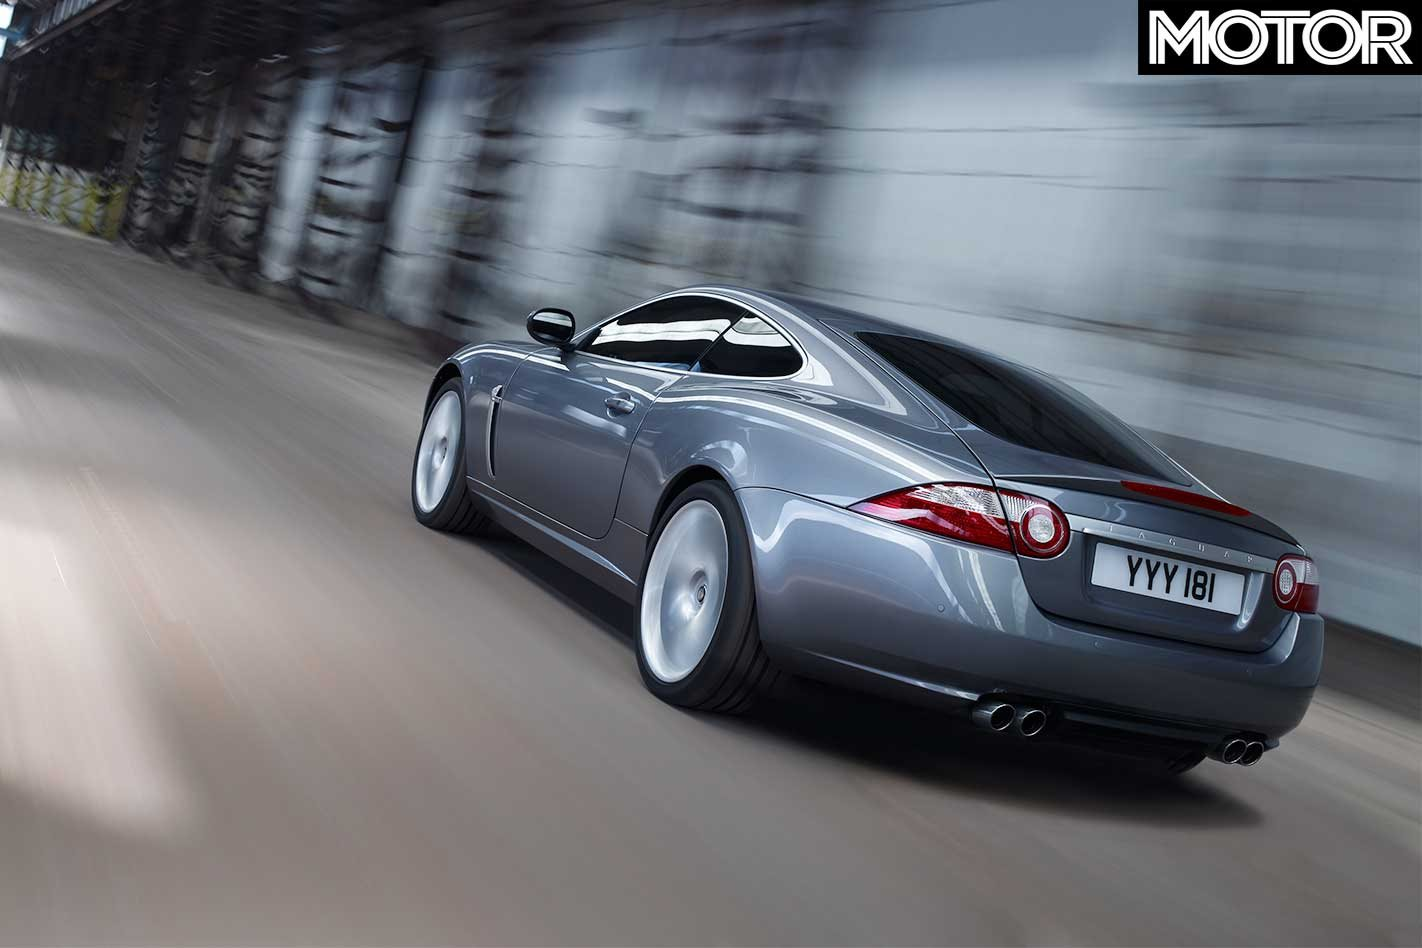 As The Throttle Extends Beyond Three Quarter Travel, The Organic, Silken  Howl Of The XKR Is Joined By The High Pitched, Screaming Whine Of The ...